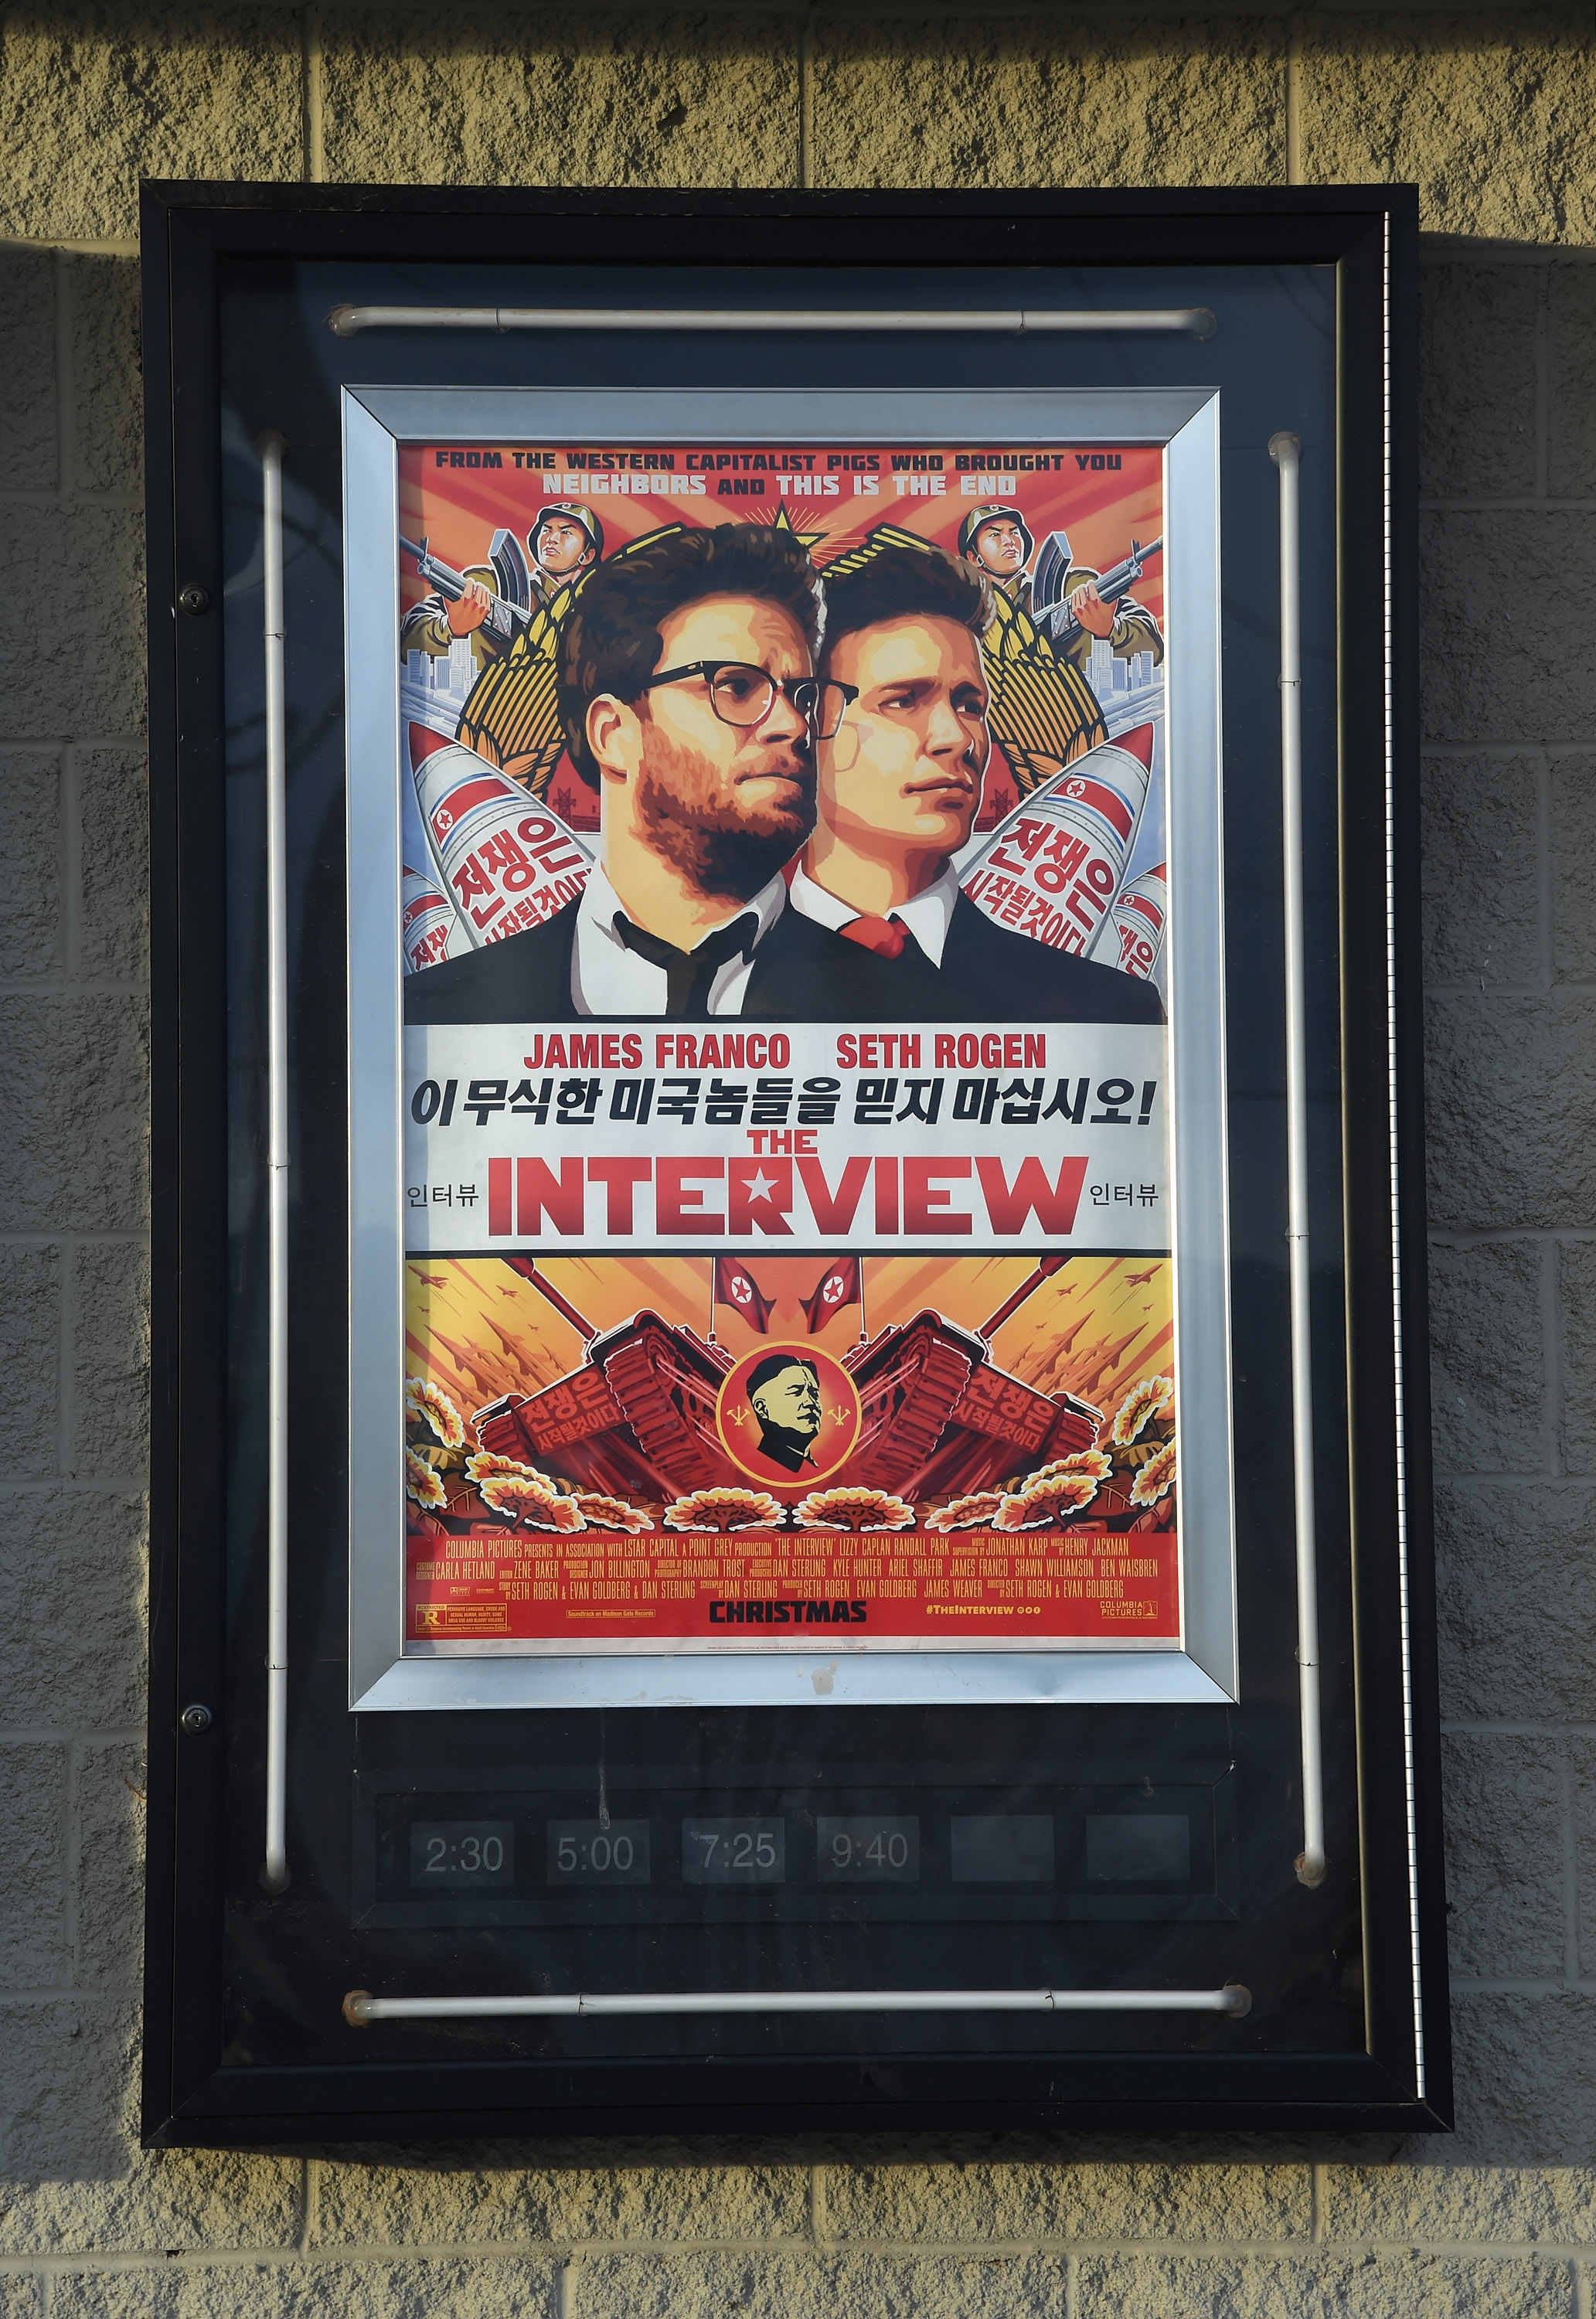 A movie poster for  The Interview  is displayed outside the Megaplex Theatres - Stadium 6 on Dec. 25, 2014 in Mesquite, Nevada.